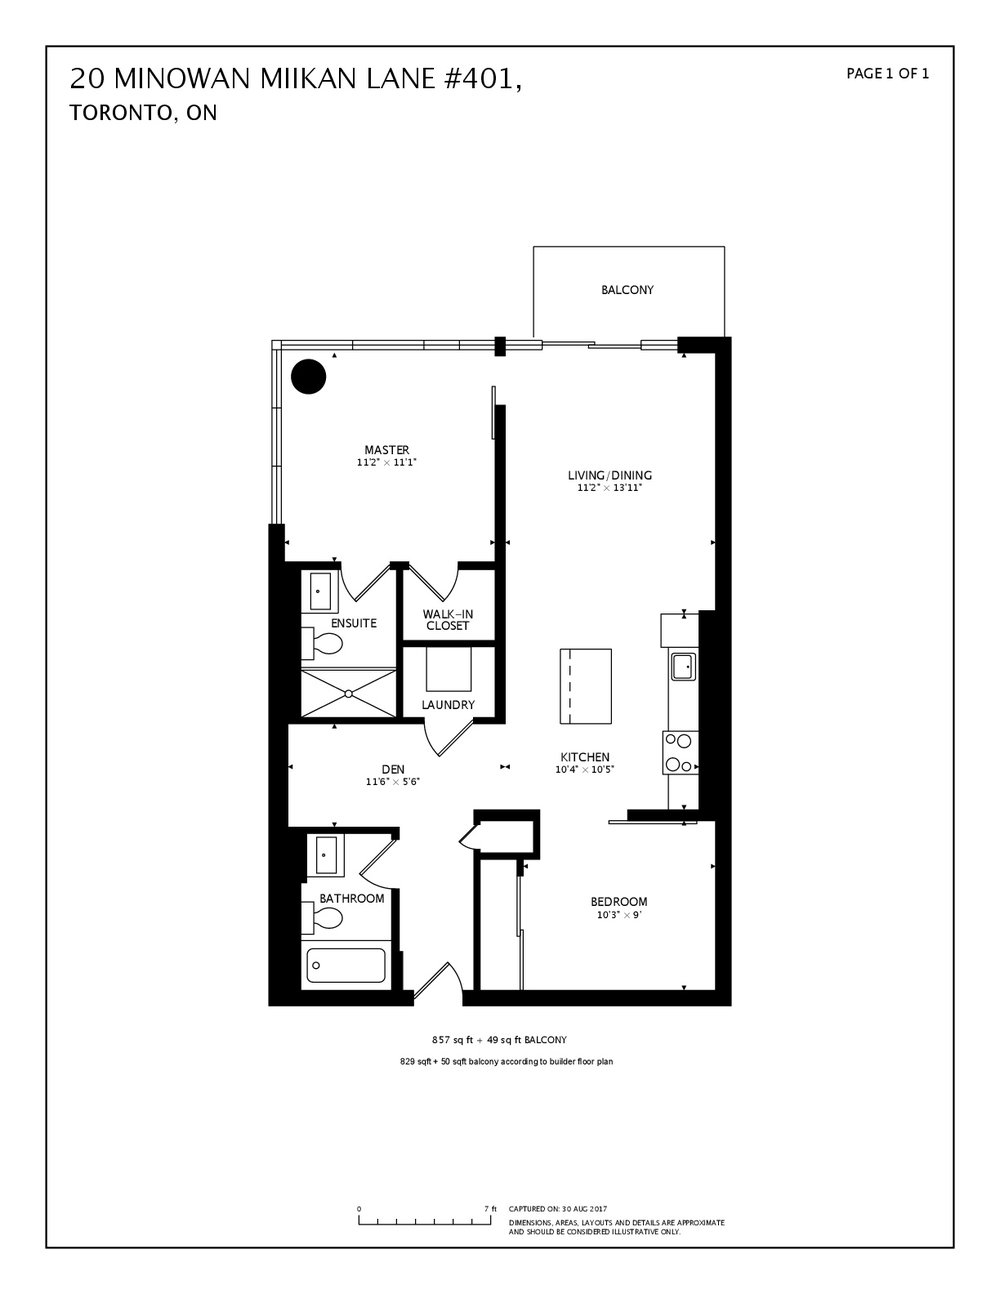 Floor Plan - 20 Minowan Miikan Lane Toursler-001 (1).jpg